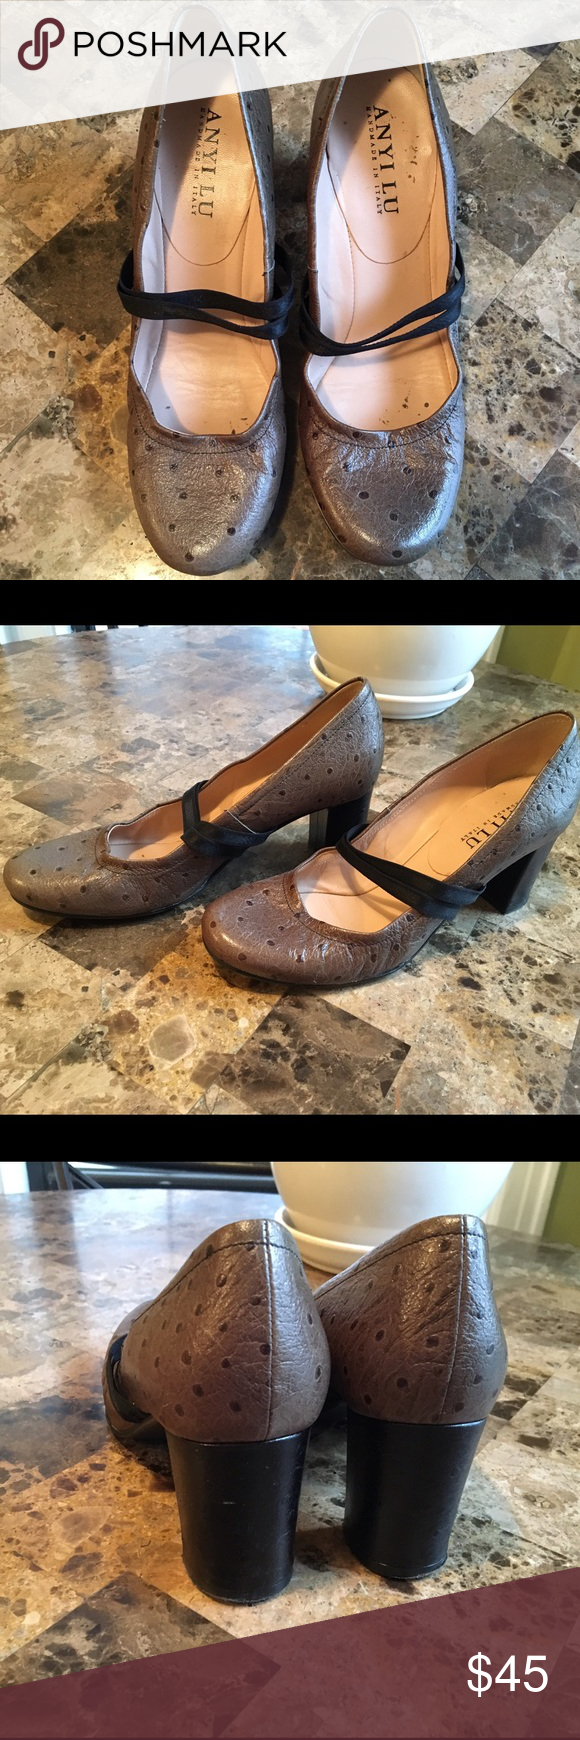 Anyi Lu handmade in Italy leather pumps. These are handmade by Italian shoe maker and perfect for work. They are in great preowned conditions and super comfortable.  authentic leather. NOTE they run at least one size small. My shoe size is 8 1/2 - 9 and they fit perfectly. Shoes Heels